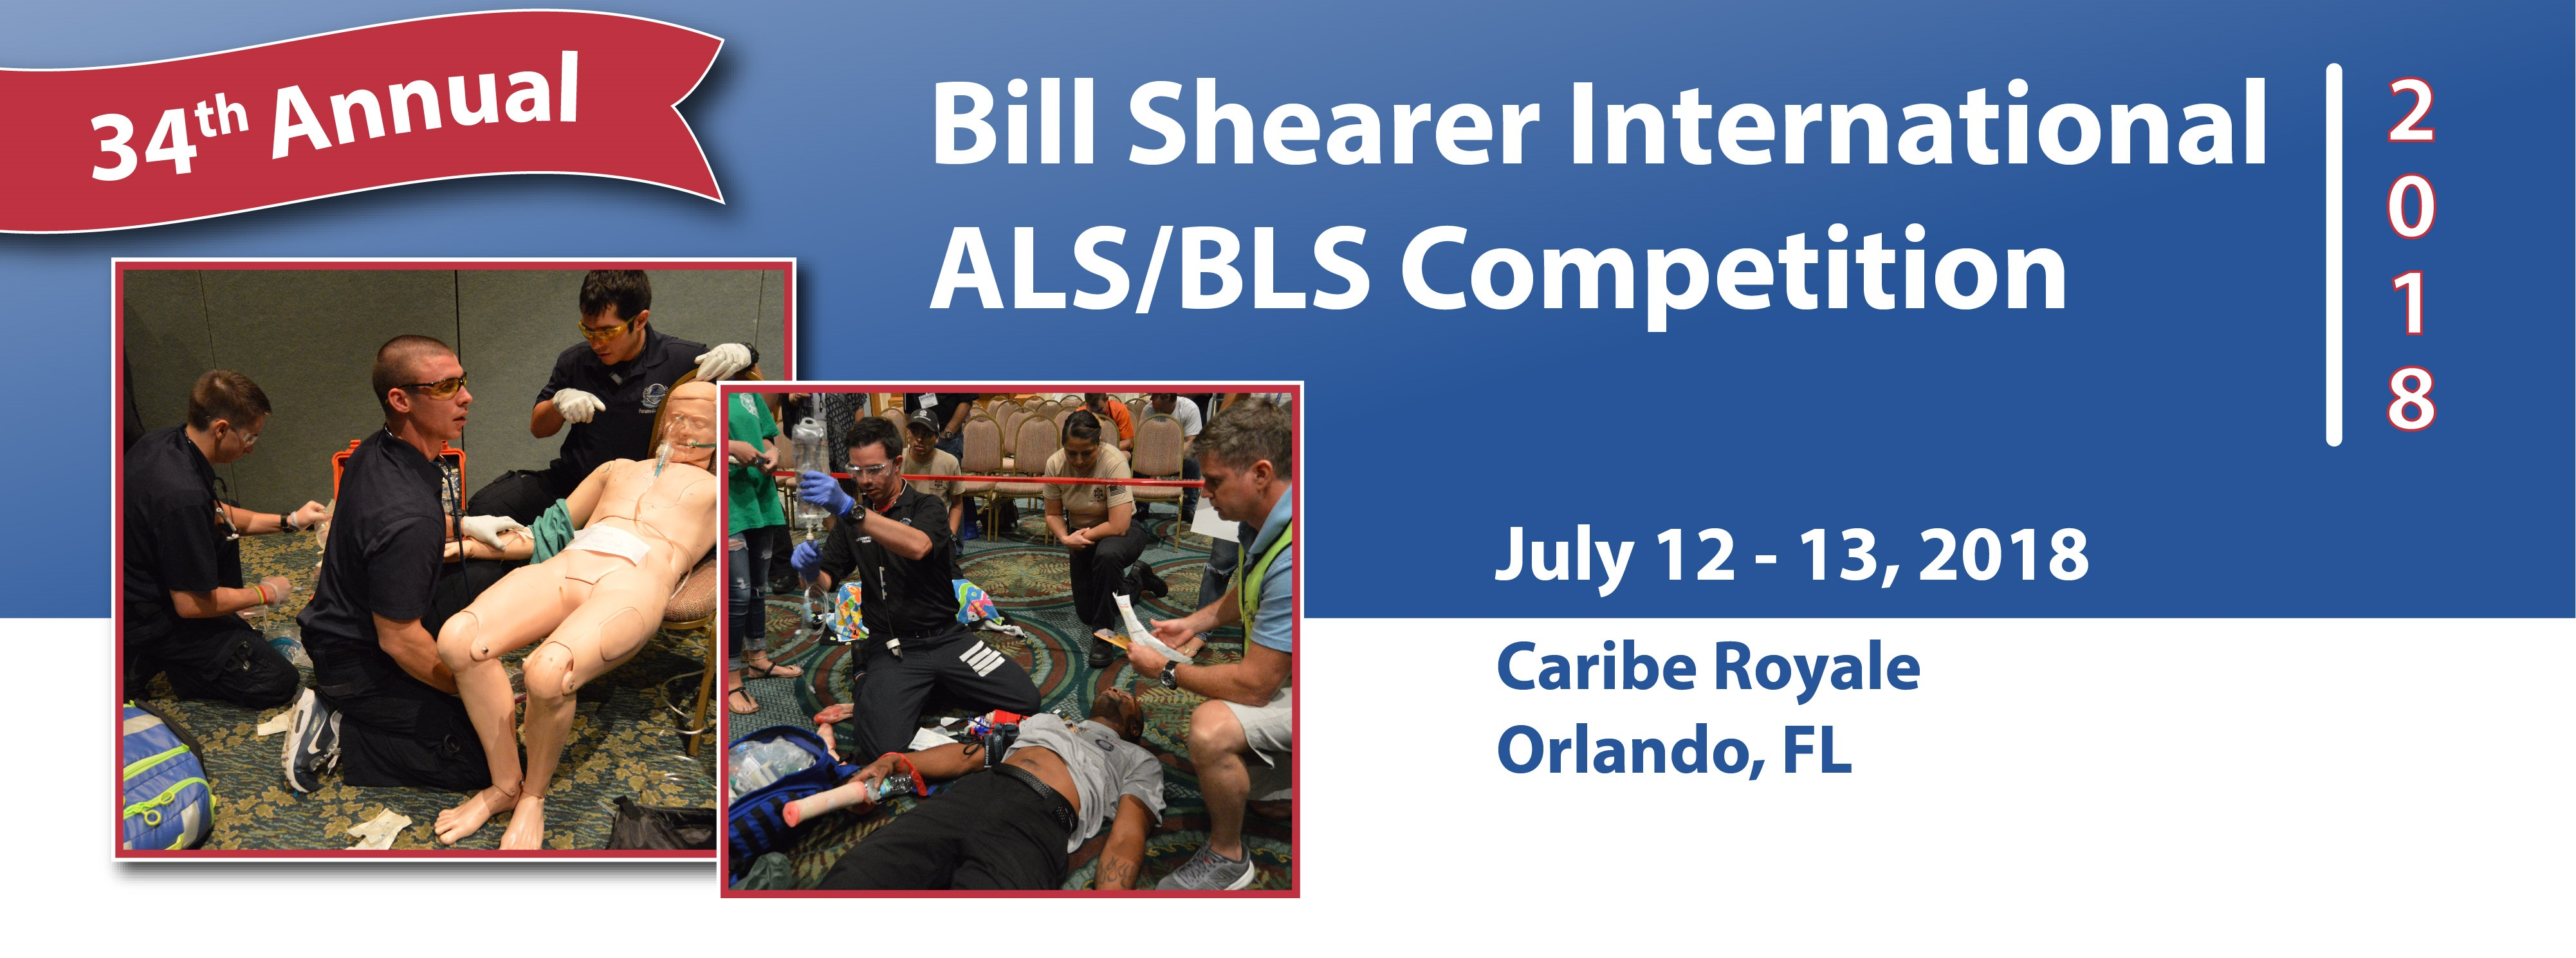 2018 ALS/BLS Competition